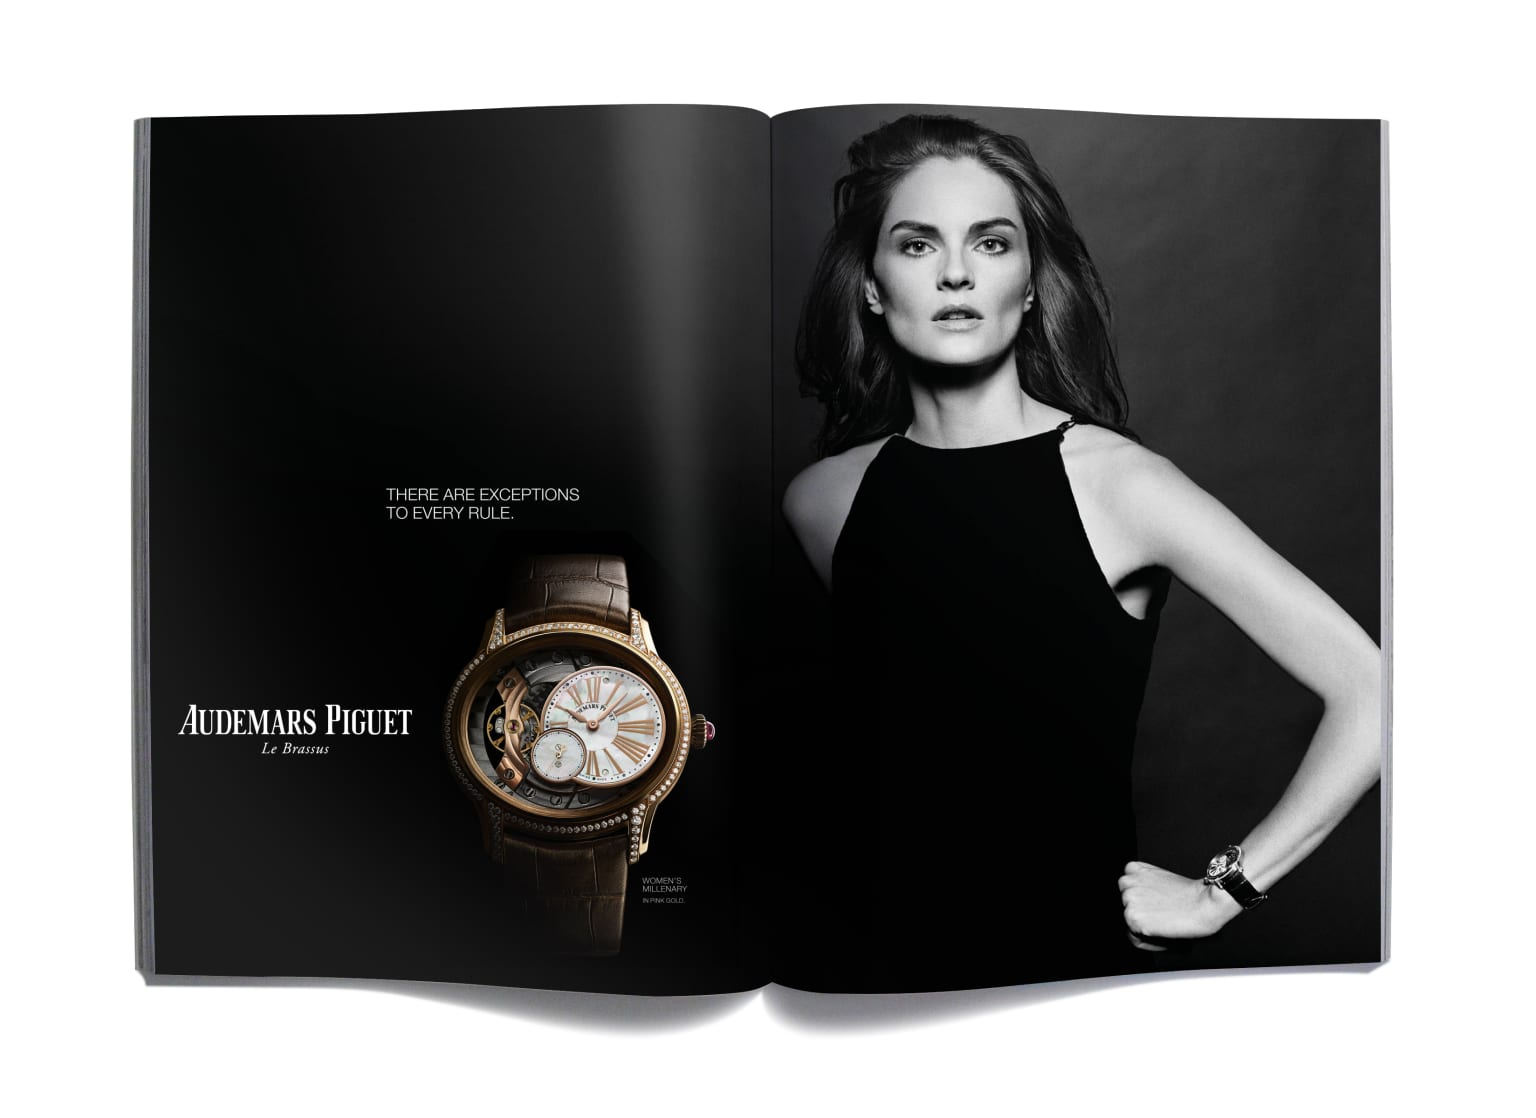 Audemars Piguet - The new Millenary, collection launch 2015